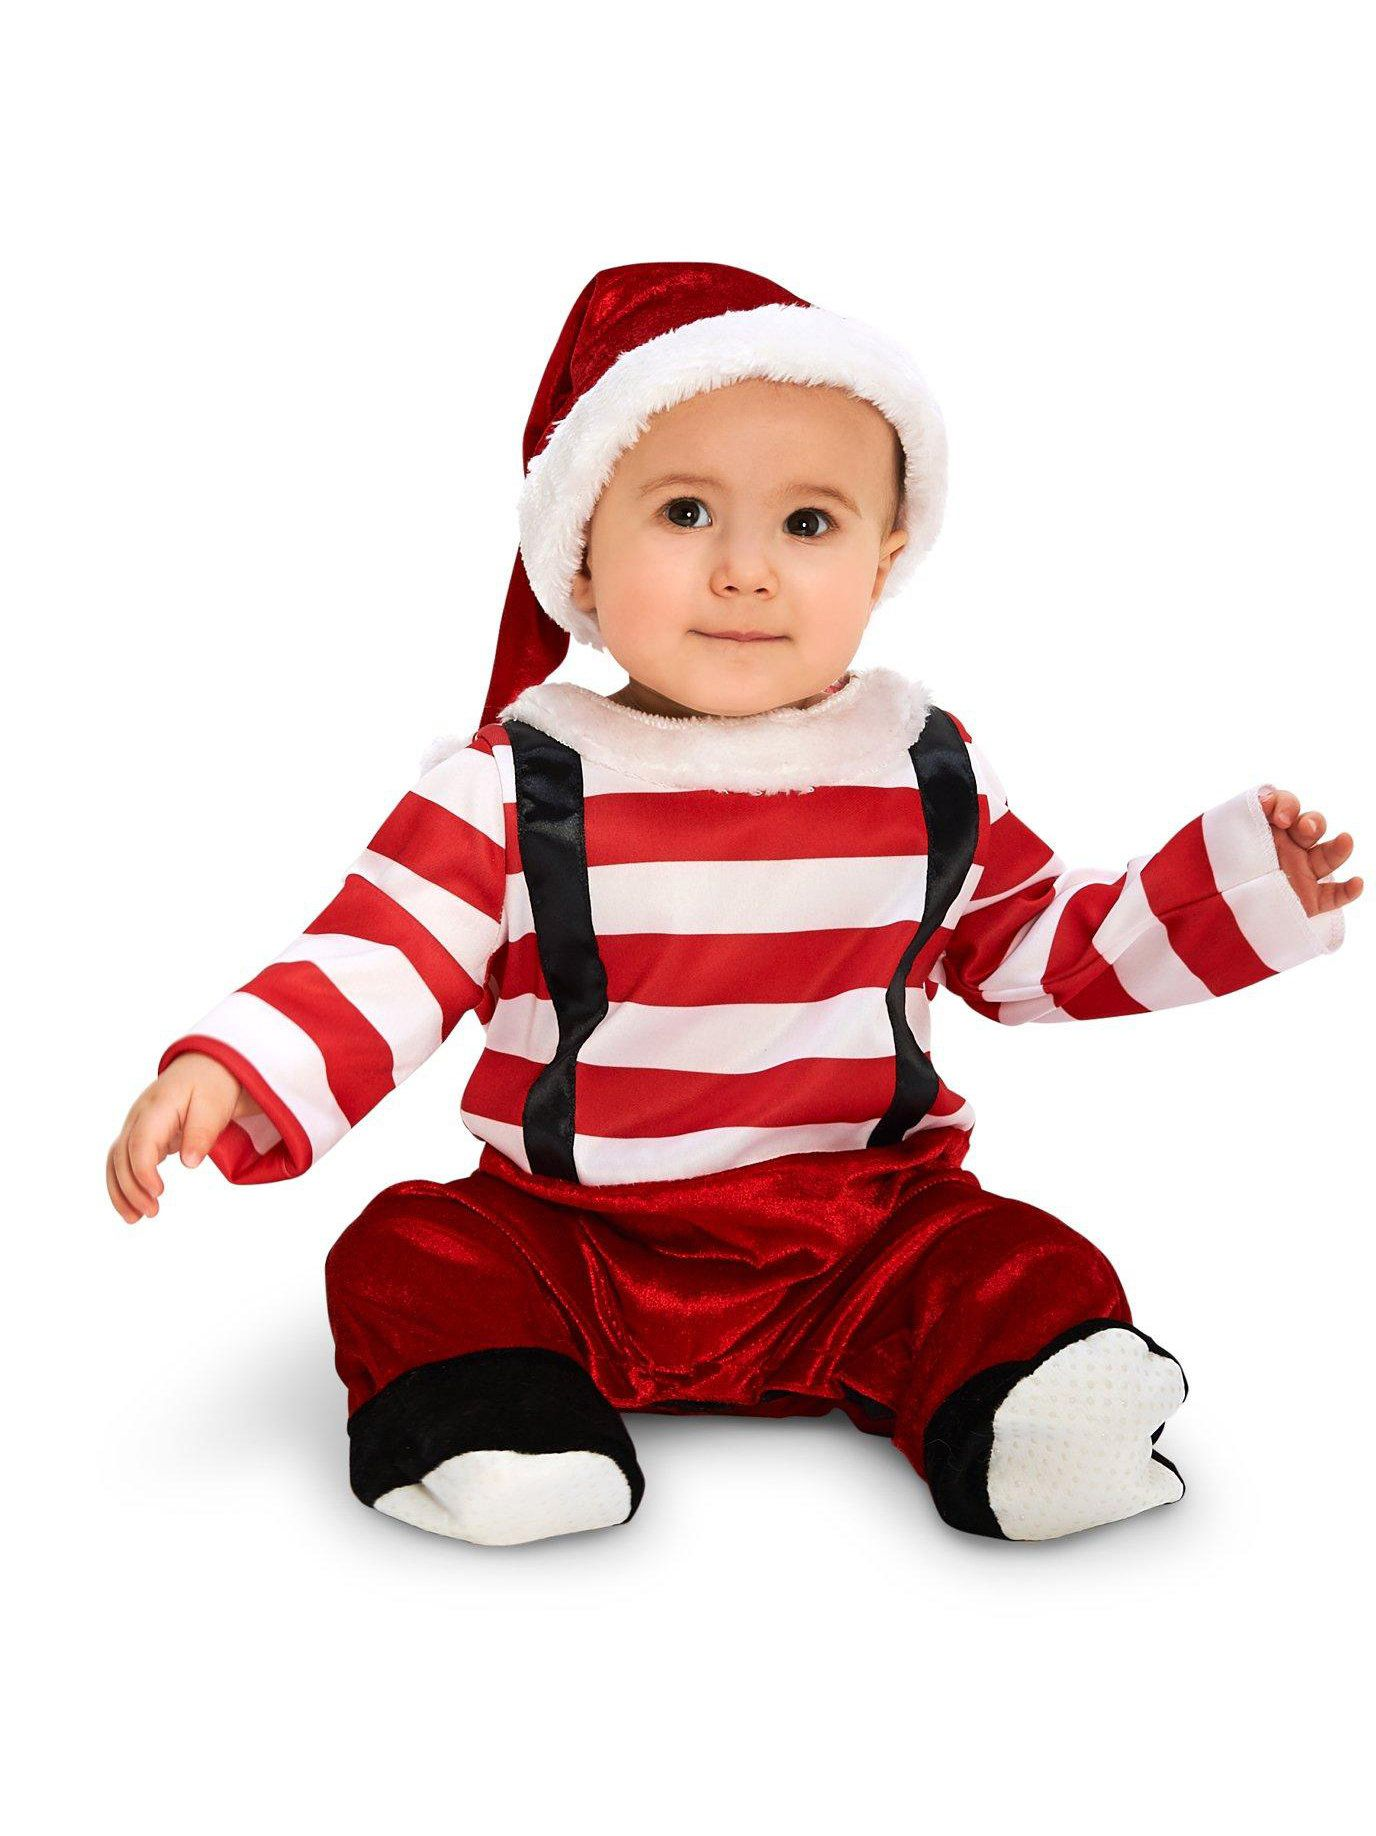 You searched for: baby elf costume! Etsy is the home to thousands of handmade, vintage, and one-of-a-kind products and gifts related to your search. No matter what you're looking for or where you are in the world, our global marketplace of sellers can help you find unique and affordable options. Let's get started!